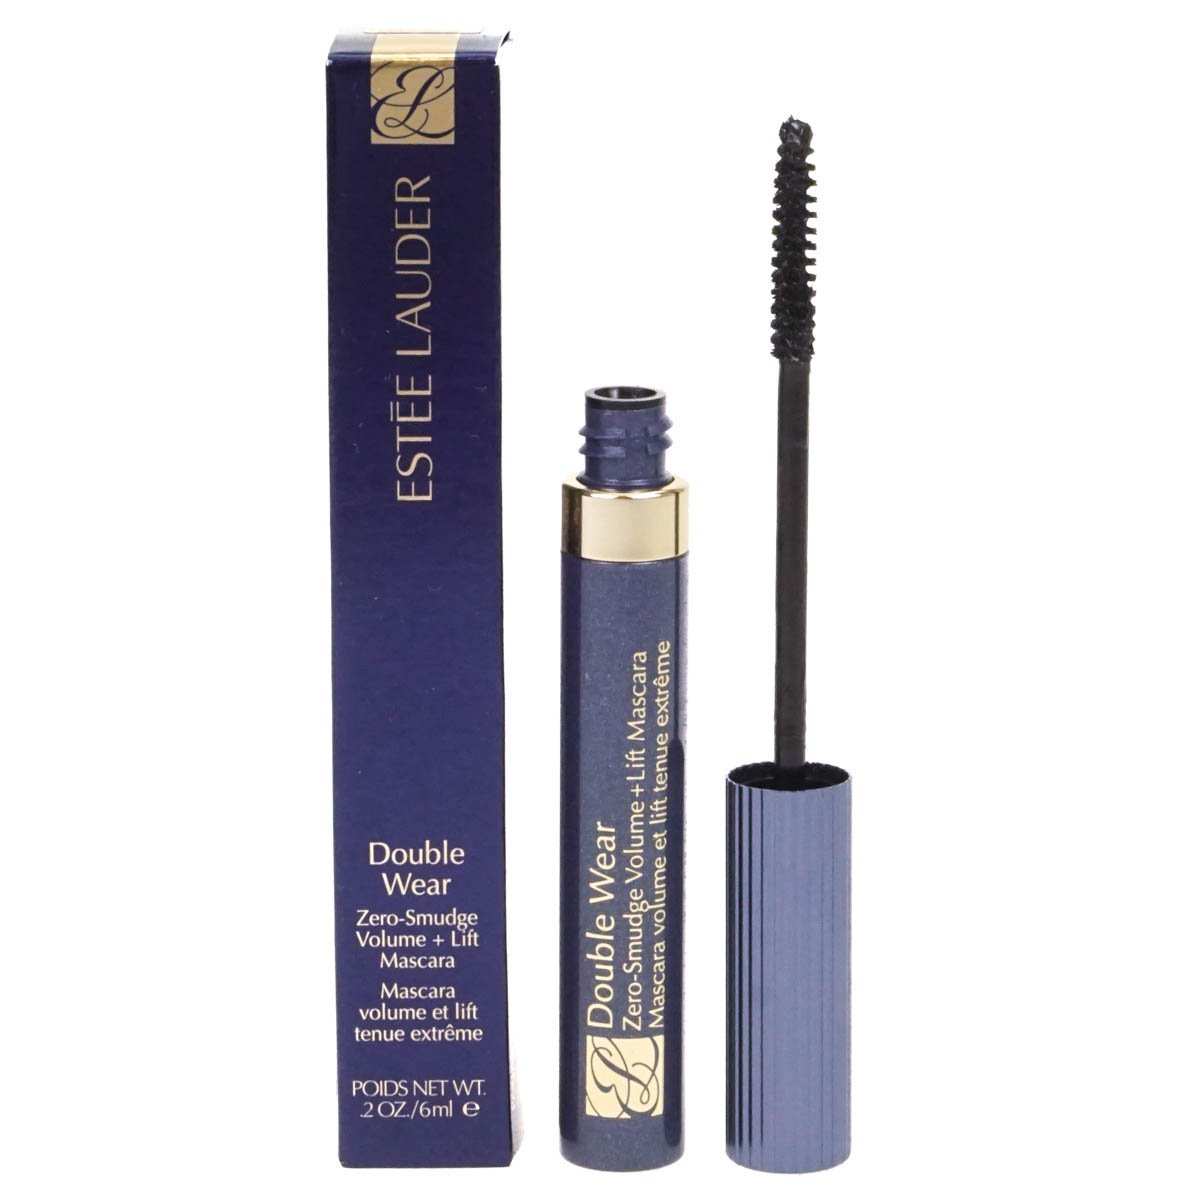 ESTEE LAUDER DOUBLE WEAR ZERO SMUDGE VOLUME + LIFT MASCARA 6 ML BLACK: Amazon.es: Belleza